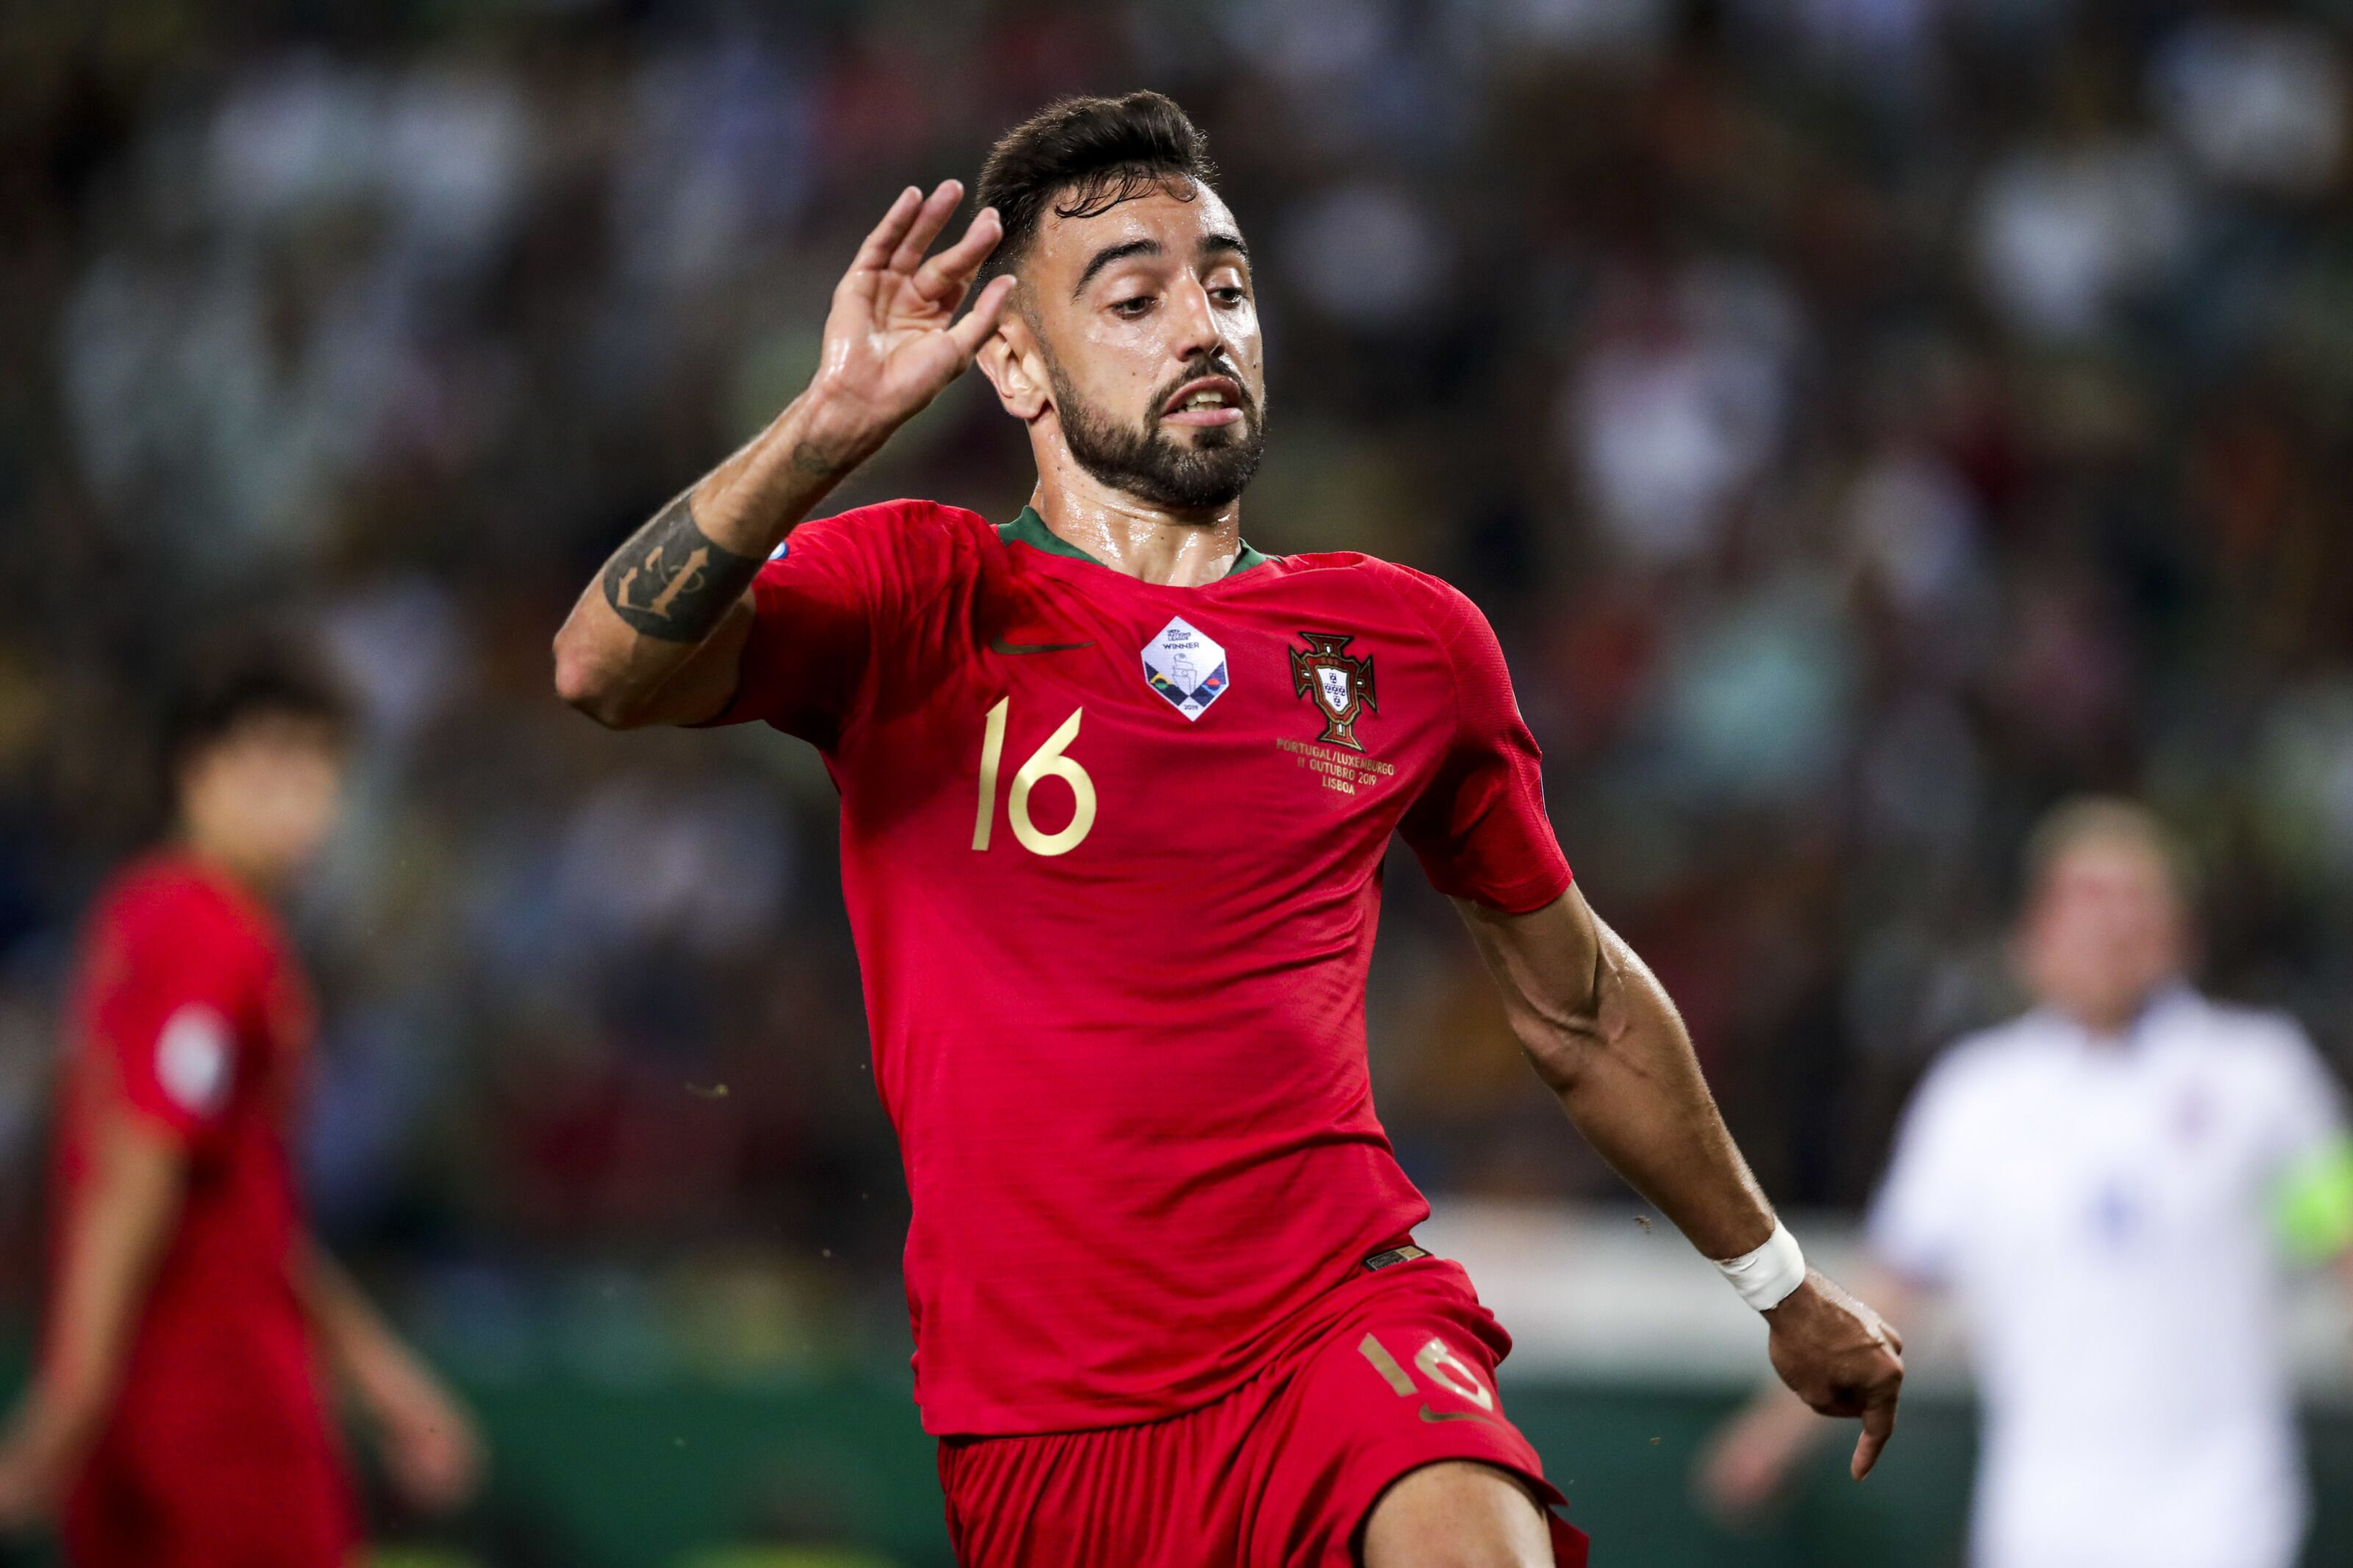 Tottenham don't need to purchase Bruno Fernandes in January